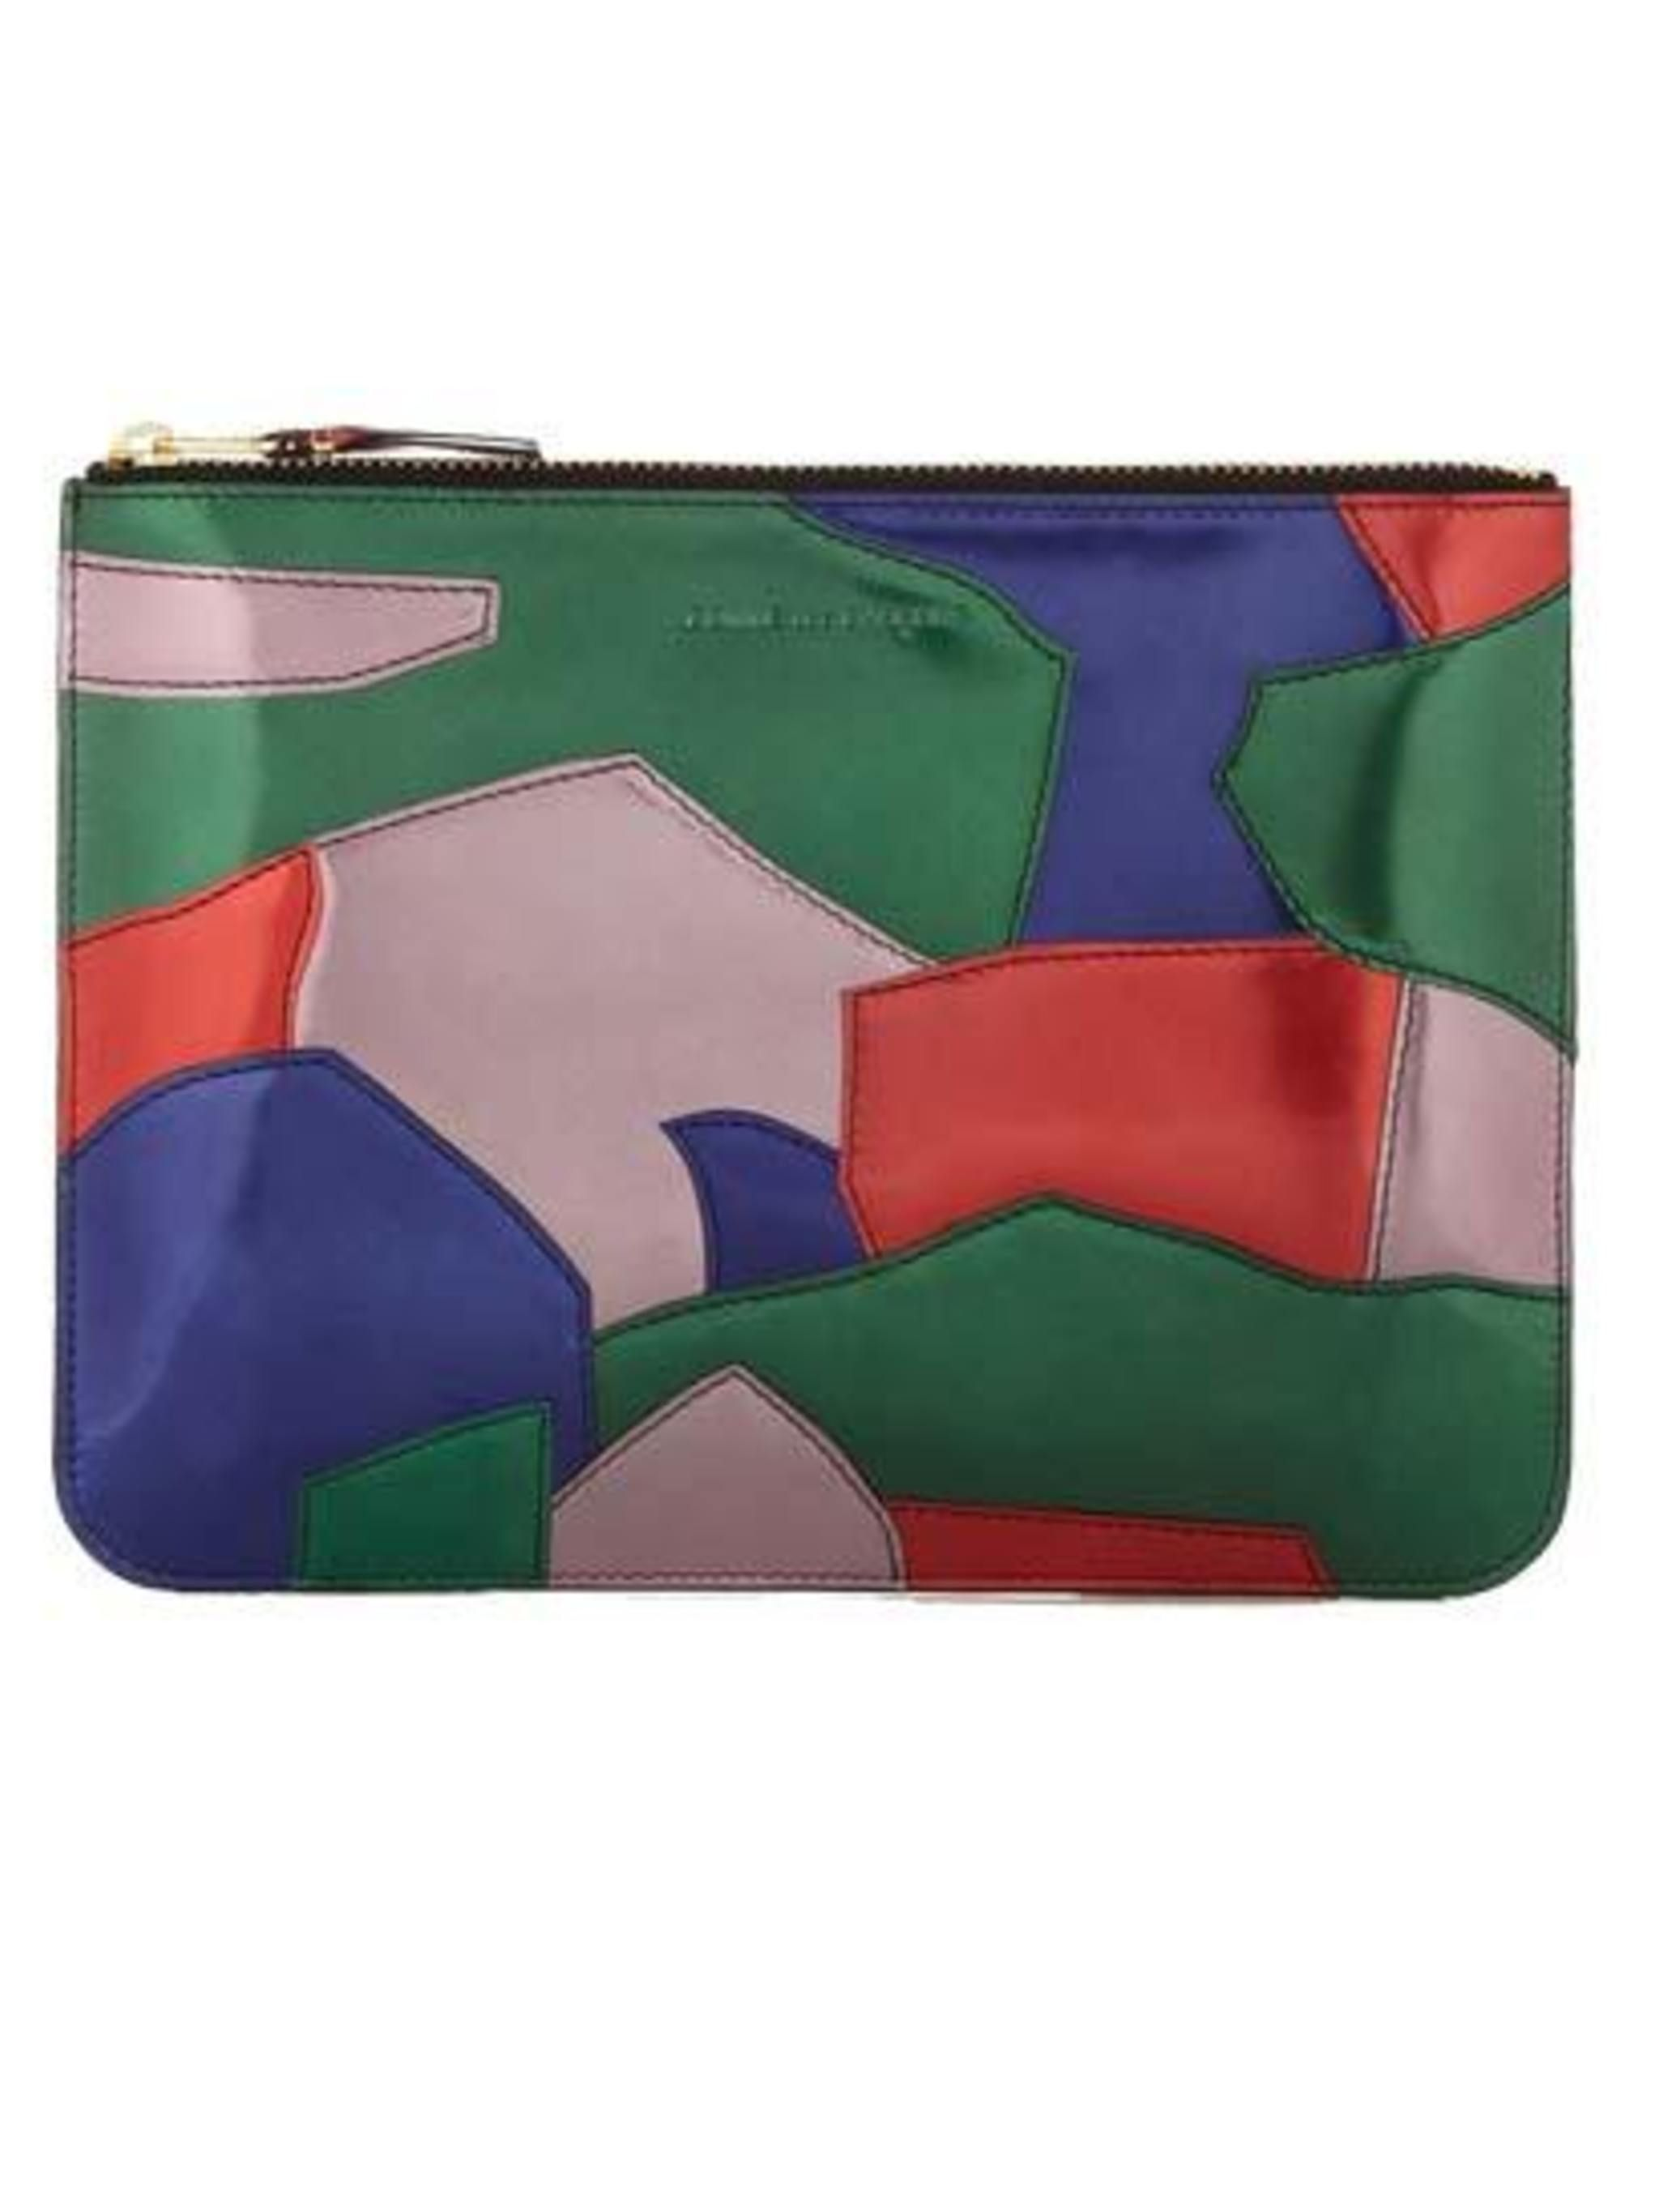 "<p>Precious Metals.. </p><p>Patchwork metallic pouch £205 by CDG from <a href=""http://shop.doverstreetmarket.com/comme-des-garcons/wallets/patchwork-metal/cdg-patchwork-metal-wallet-sa5100pm"">DoverStreetMarket</a></p>"